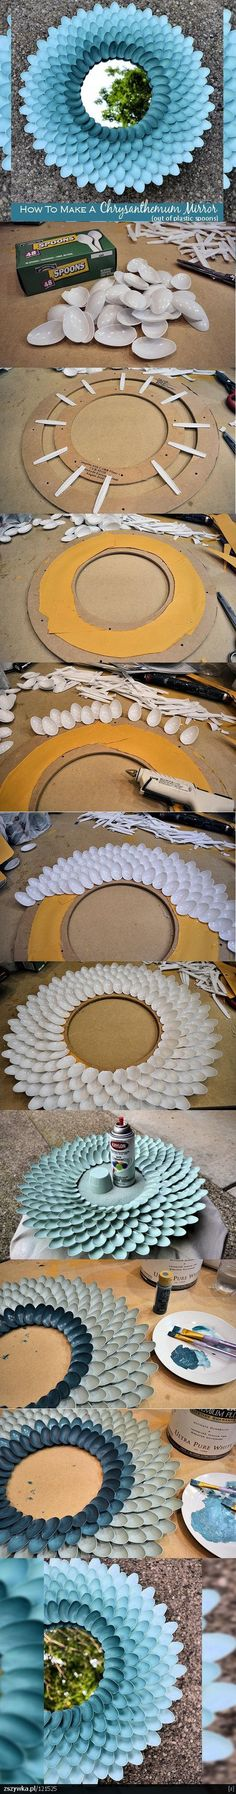 Can you believe this is made from plastic spoons? How to Make a Chrysanthemum Mirror.